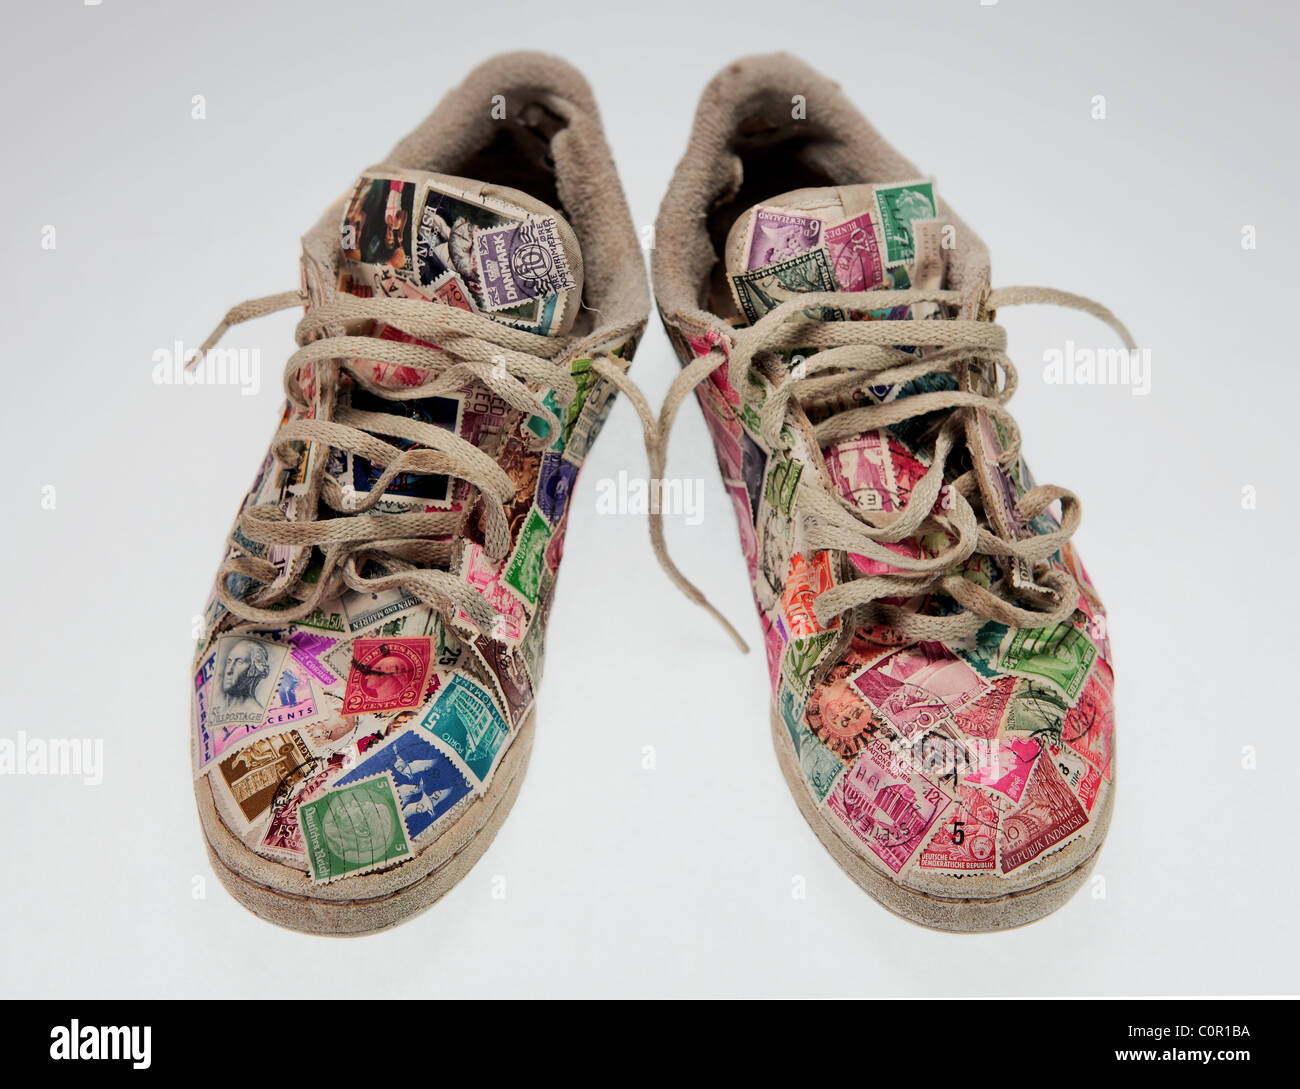 a pair of worn running shoes covered with old postage stamps on a clear background - Stock Image